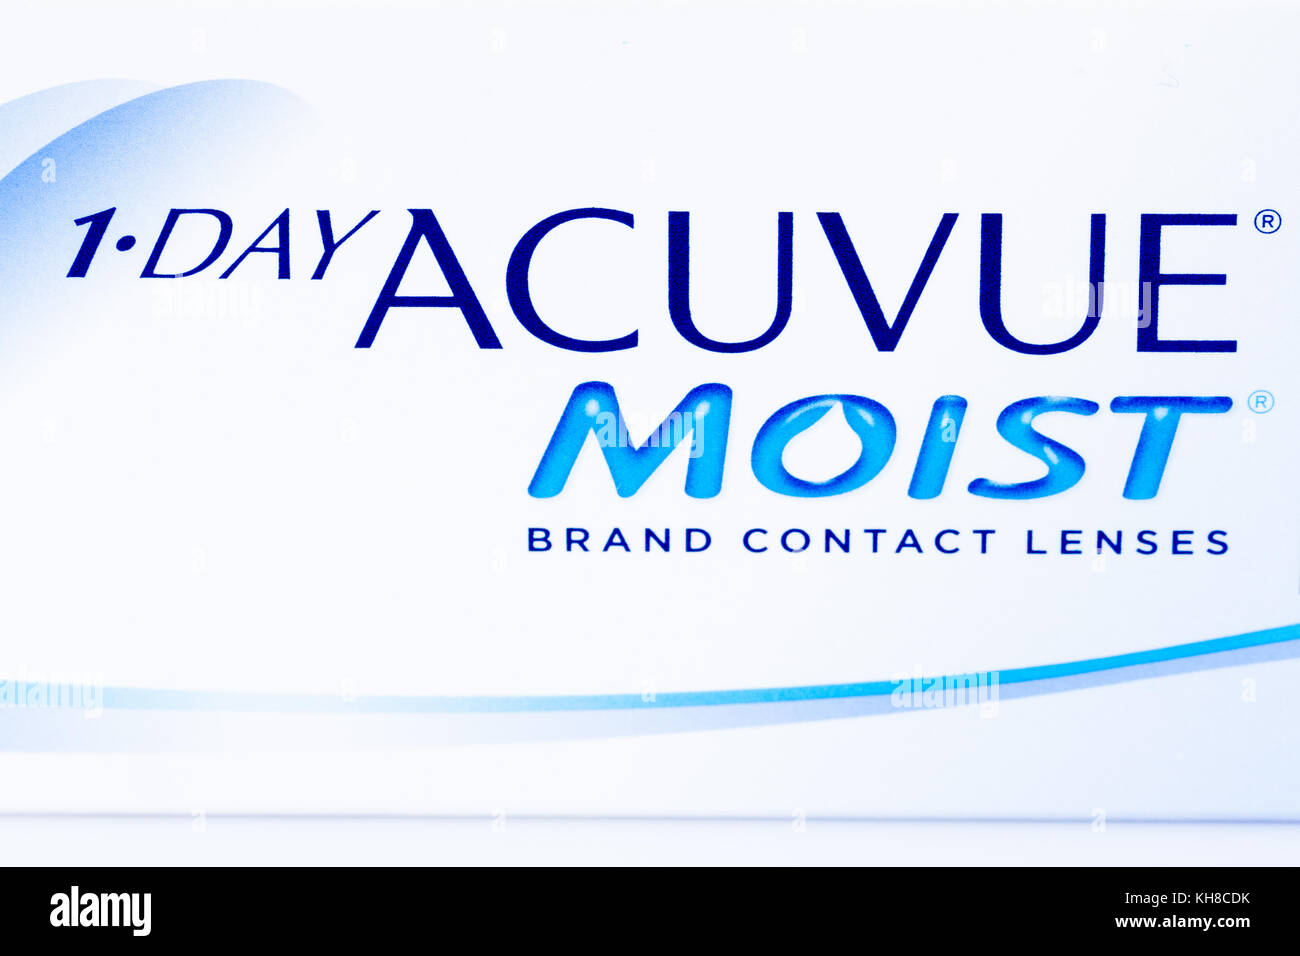 Lenses correction eyes stock photos lenses correction eyes stock 1 day acuvue moist brand contact lenses close up of logo on box nvjuhfo Image collections